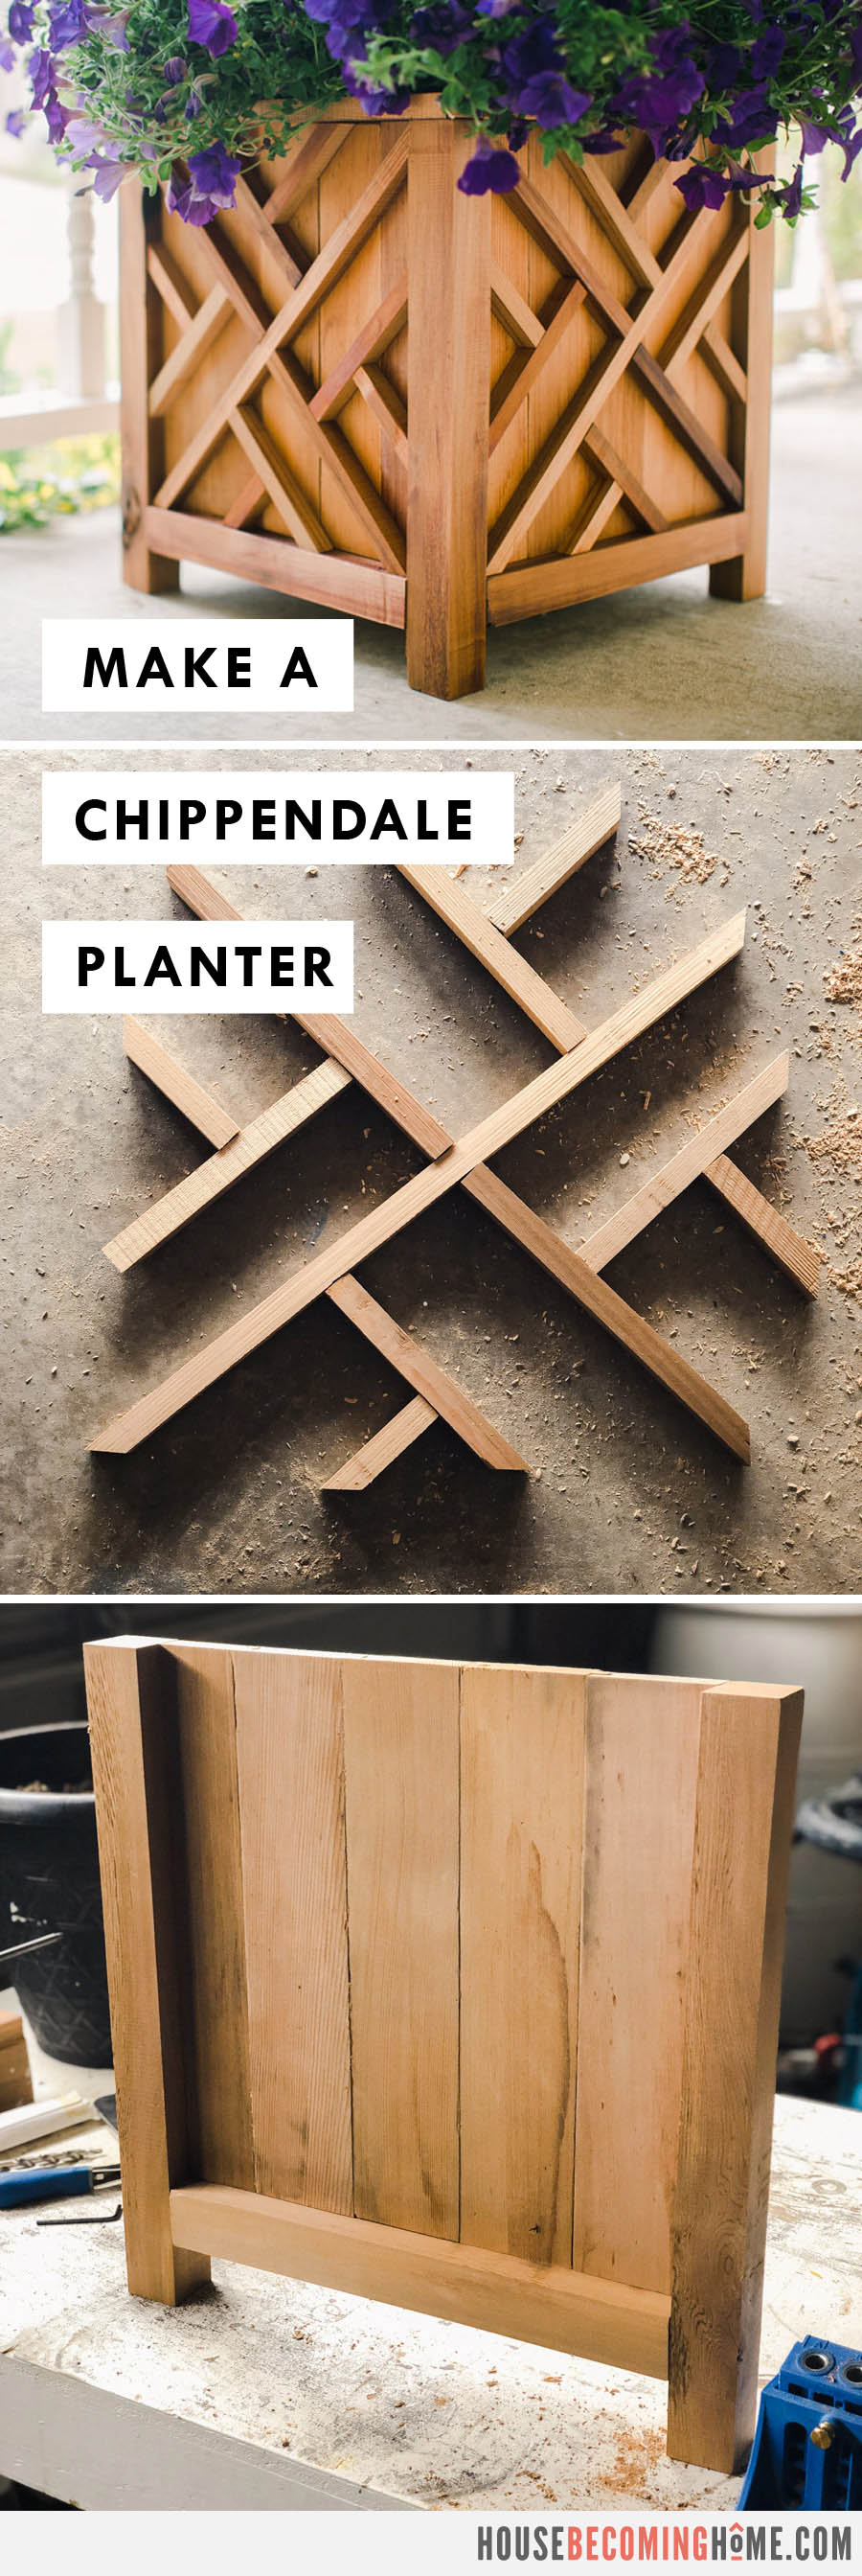 Make a Chippendale Planter : Free PDF Plans and Instructions